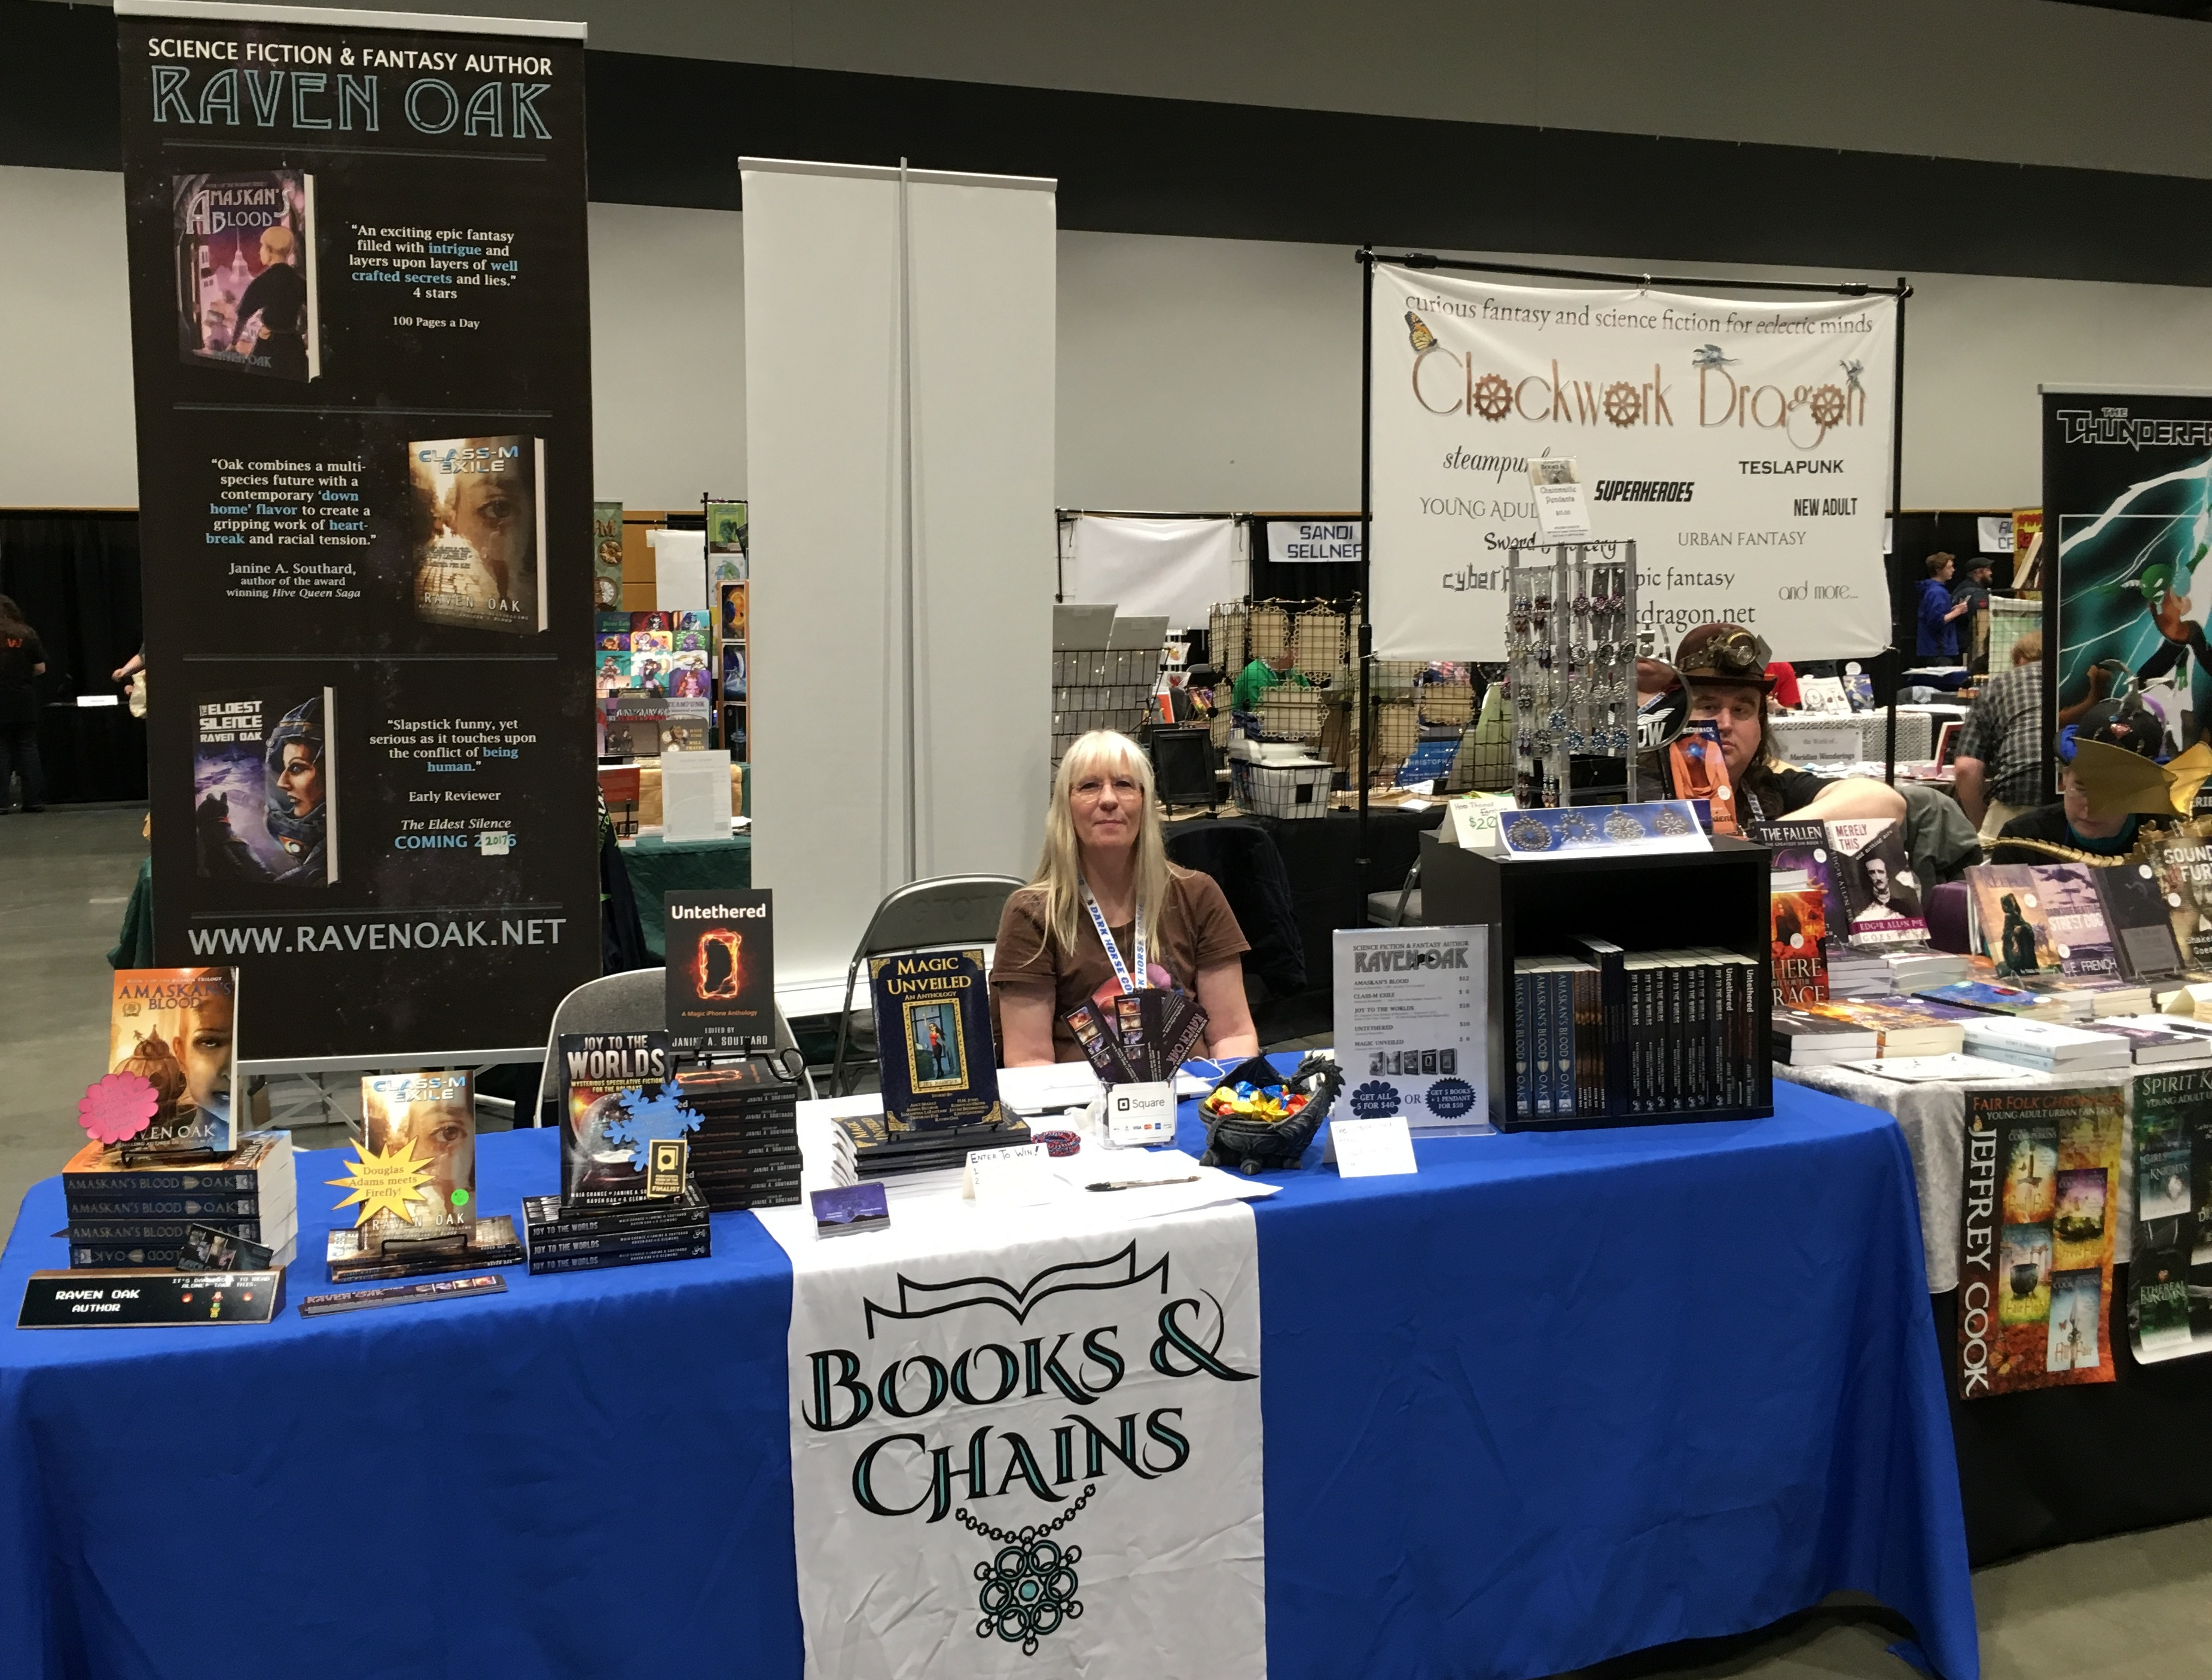 Books and Chains booth